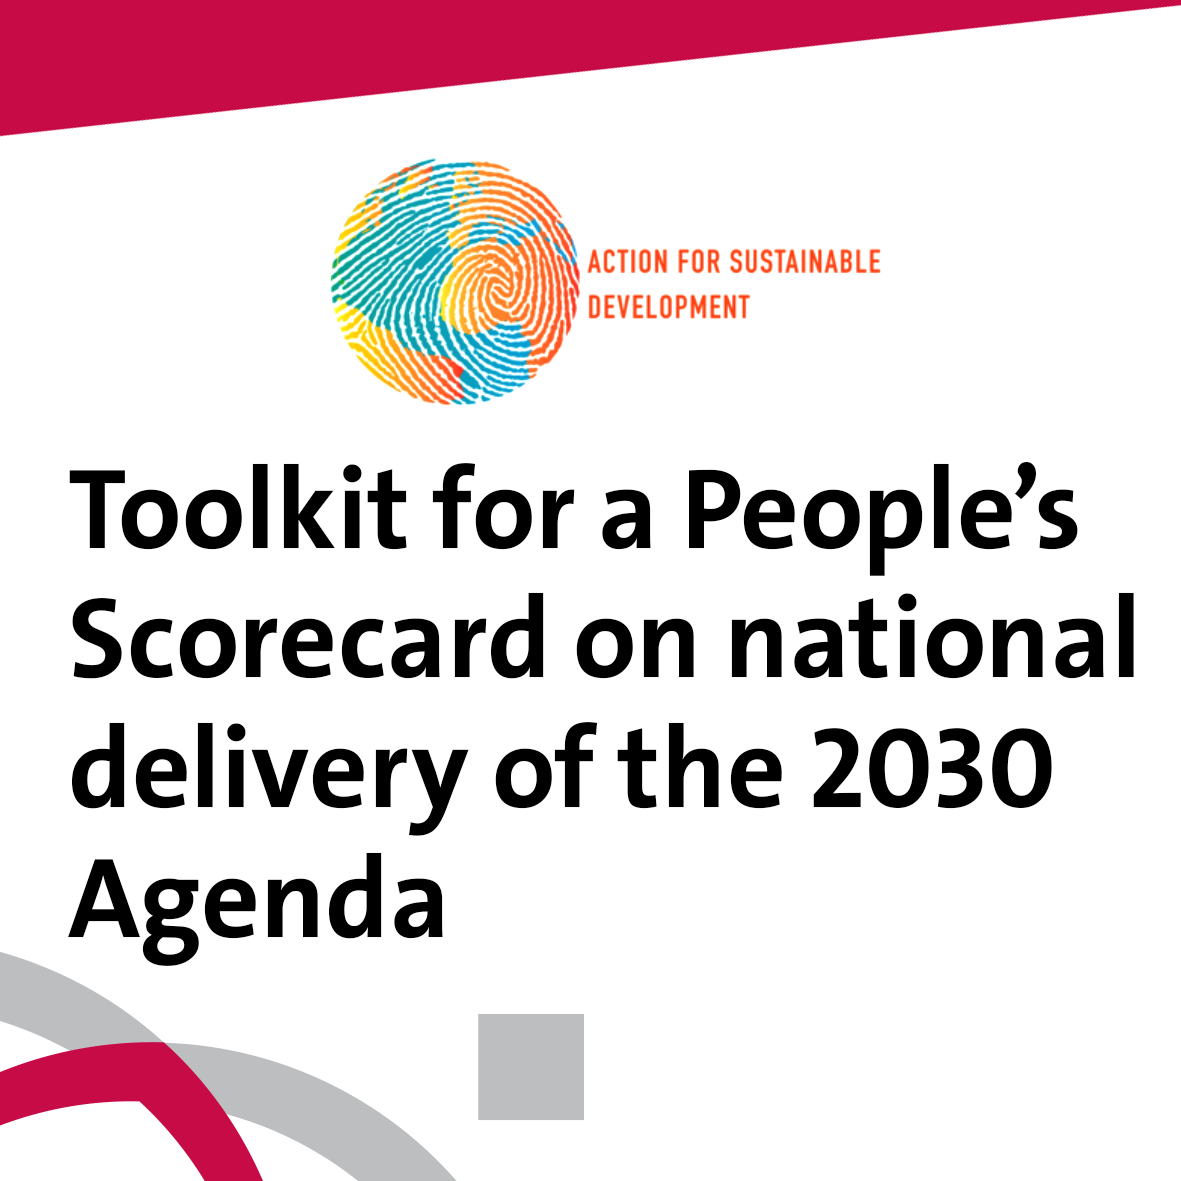 Toolkit for a People's Scorecard on National delivery of the 2030 Agenda